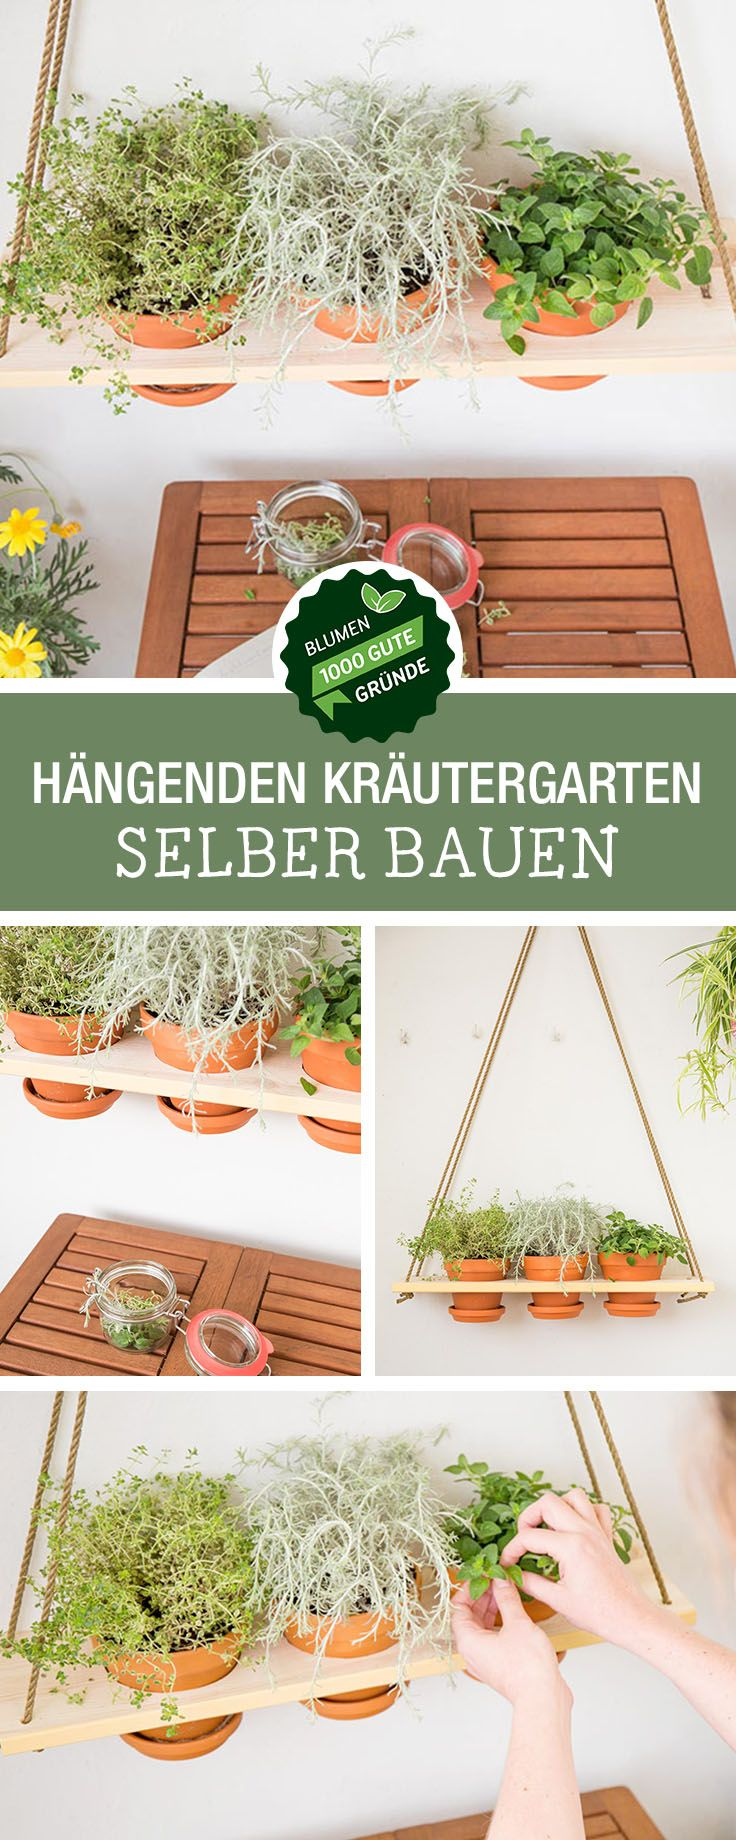 Geschenkidee zum Muttertag: Zusammen mit unserem Partner 1000 gute Gründe zeigen wir Euch, wie Ihr einen hängenden Kräutergarten baut, Balkon Deko / gift idea for Mother's Day: how to build a hanging herb garden, urban gardening via DaWanda.com #dawandaandfriends #kräutergartenbalkon